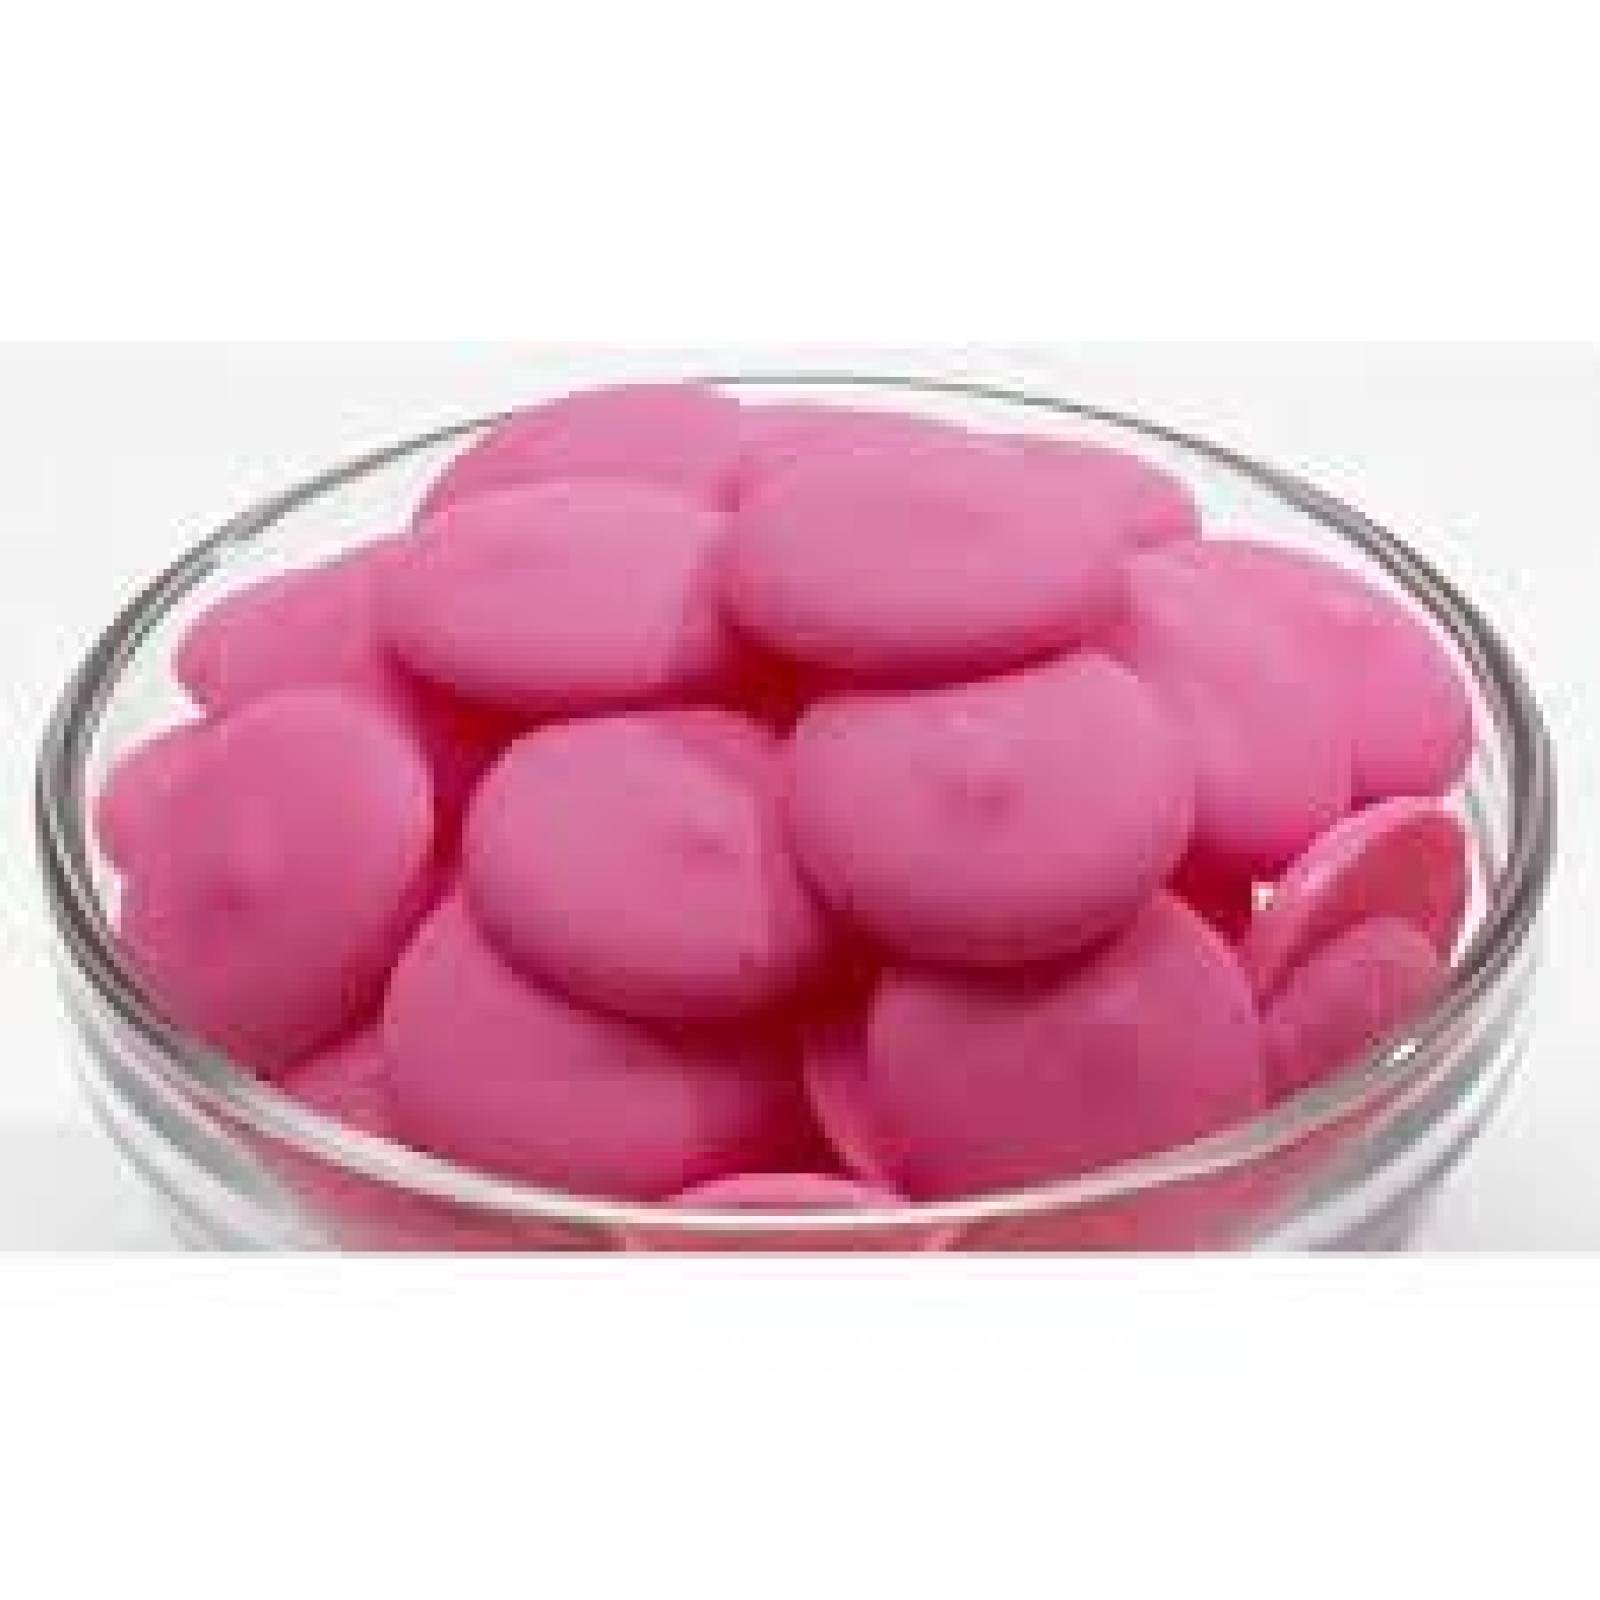 Merckens Pink Wafers - 25.01 lb by Dylmine Health (Image #2)